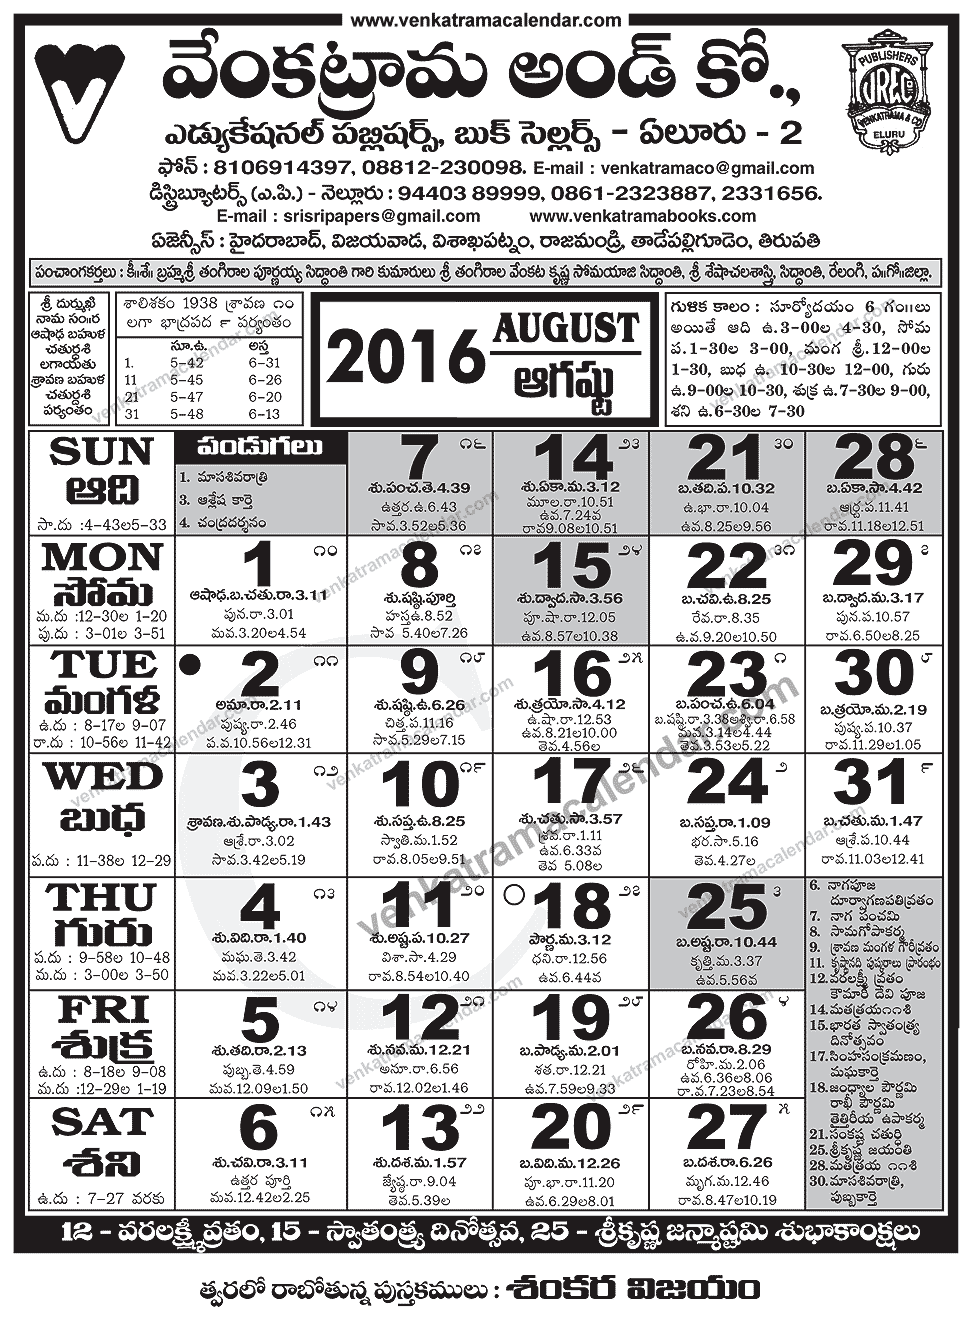 Venkatrama & Co., Telugu Calendar 2016 January Festivals & Holidays ...